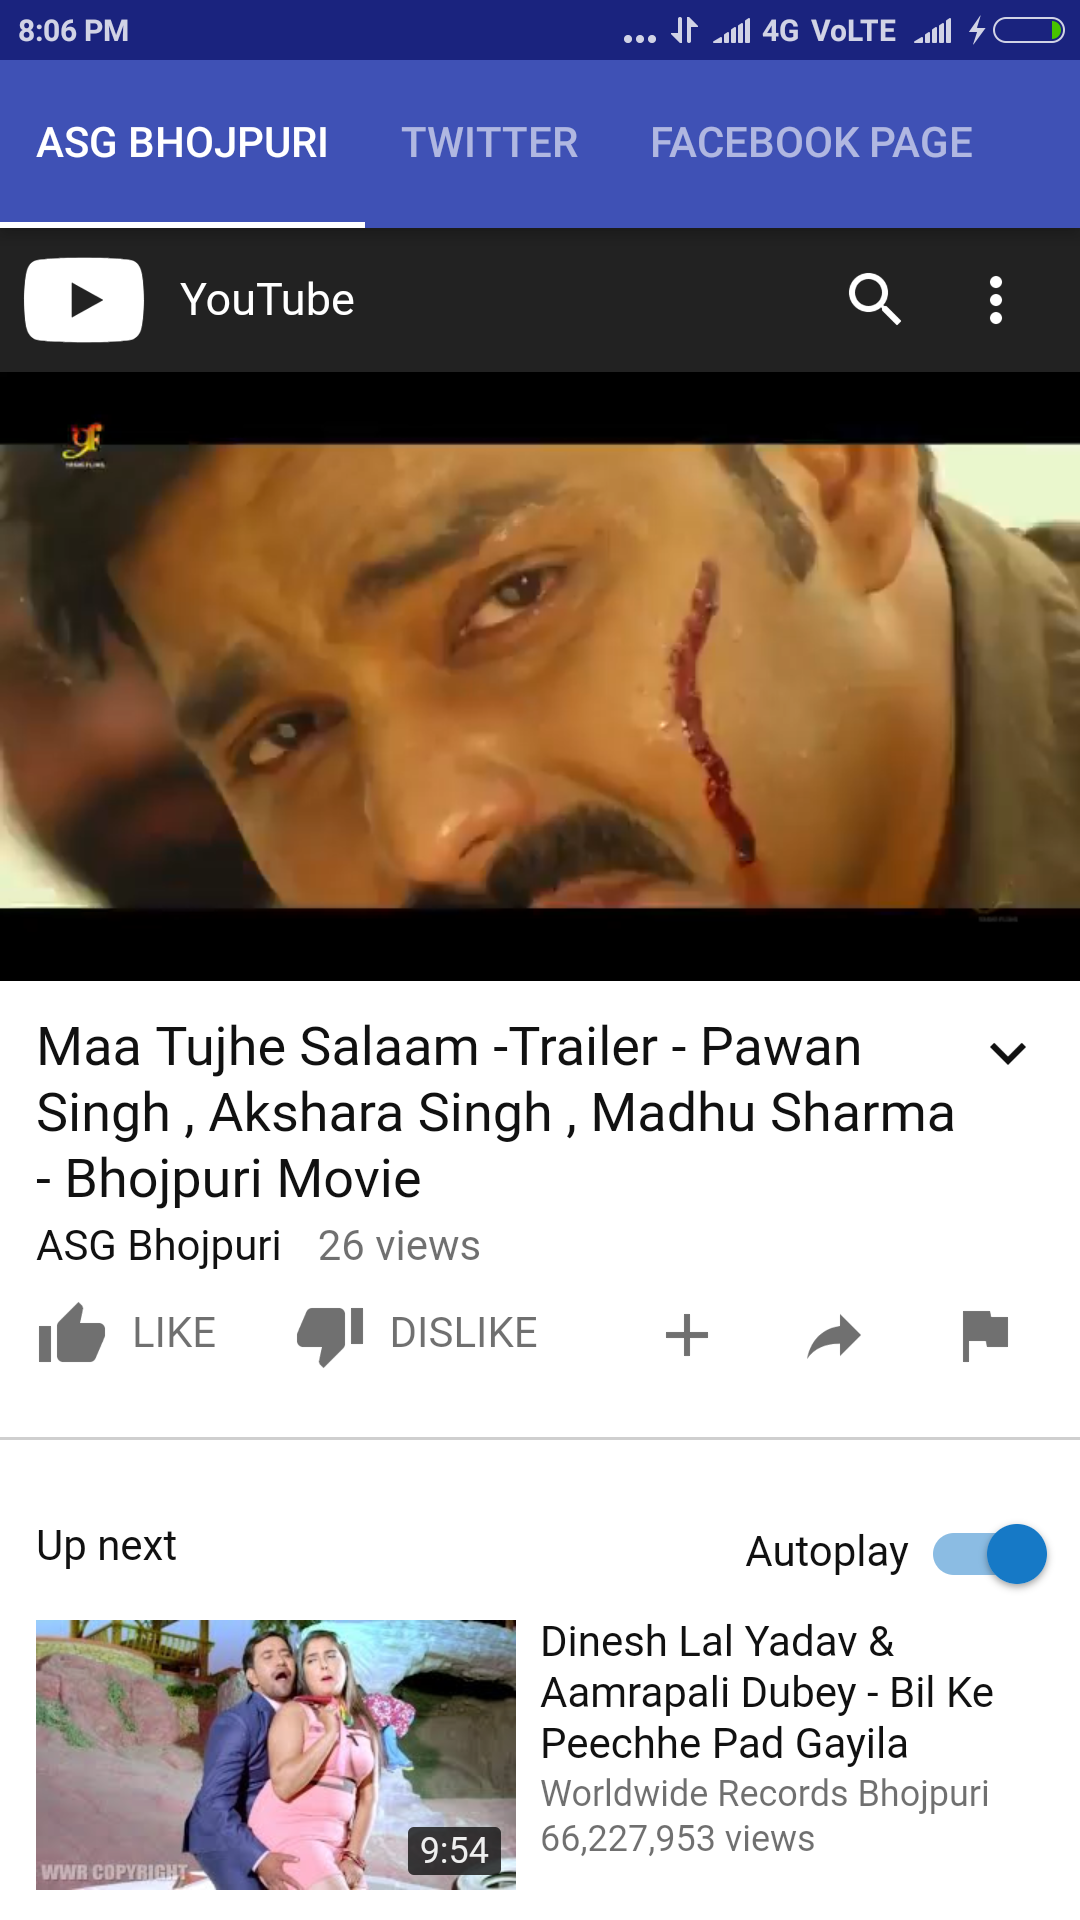 ASG Bhojpuri: Amazon co uk: Appstore for Android